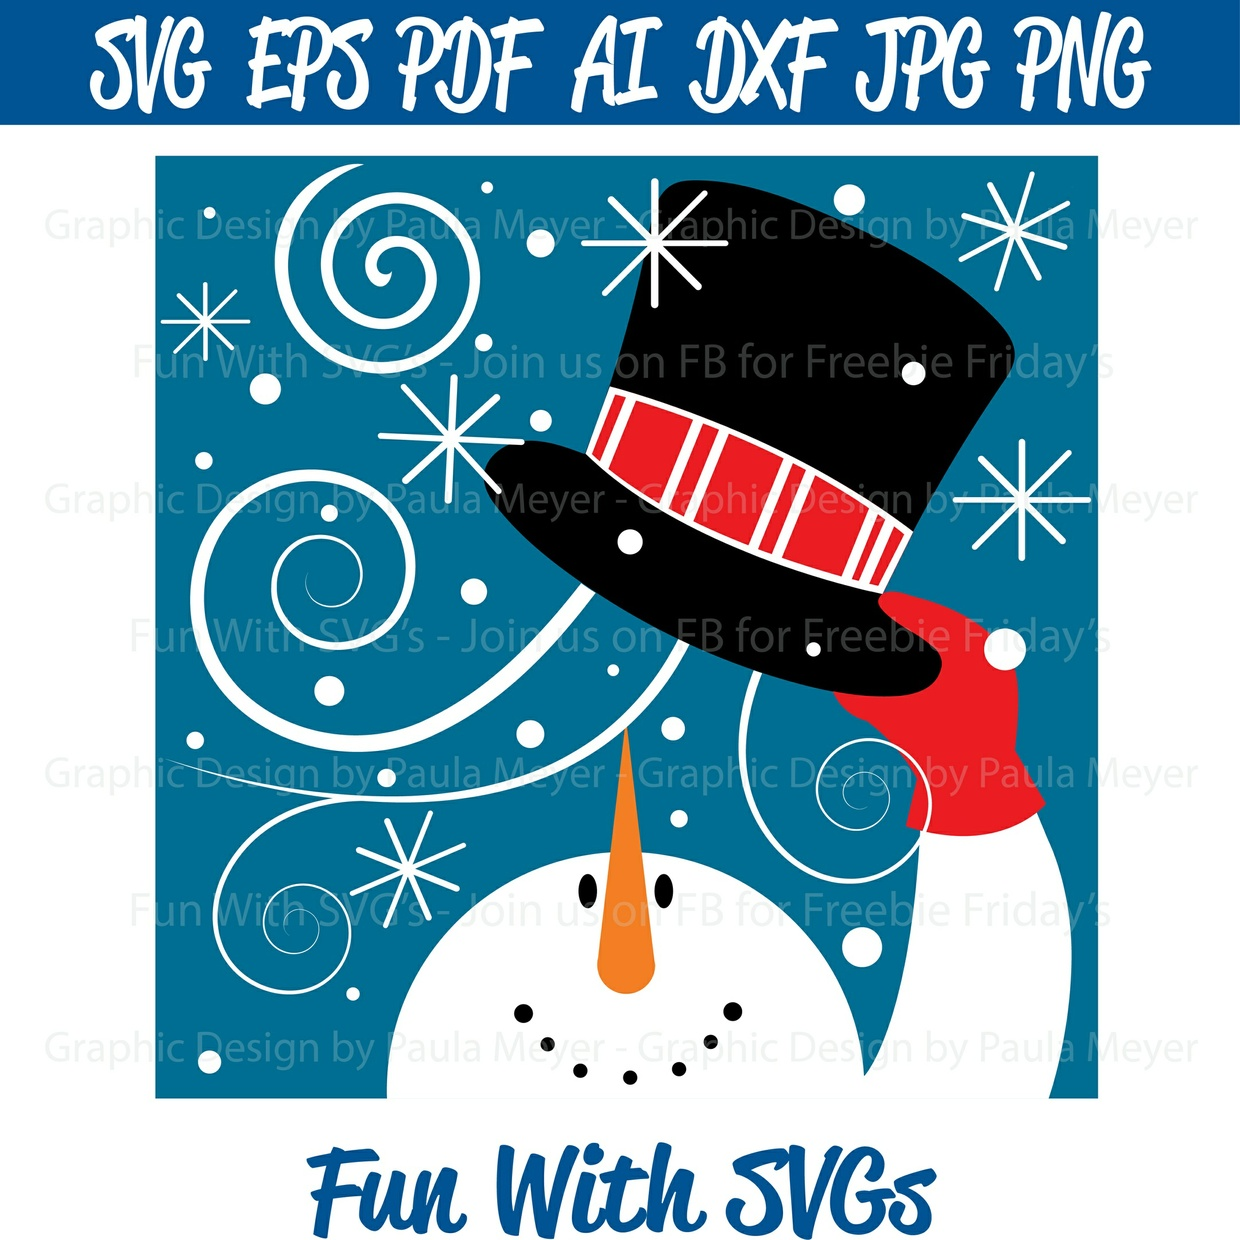 Snowman SVG - Wind, Hat - High Resolution Printable Graphics and Editable Vector Art